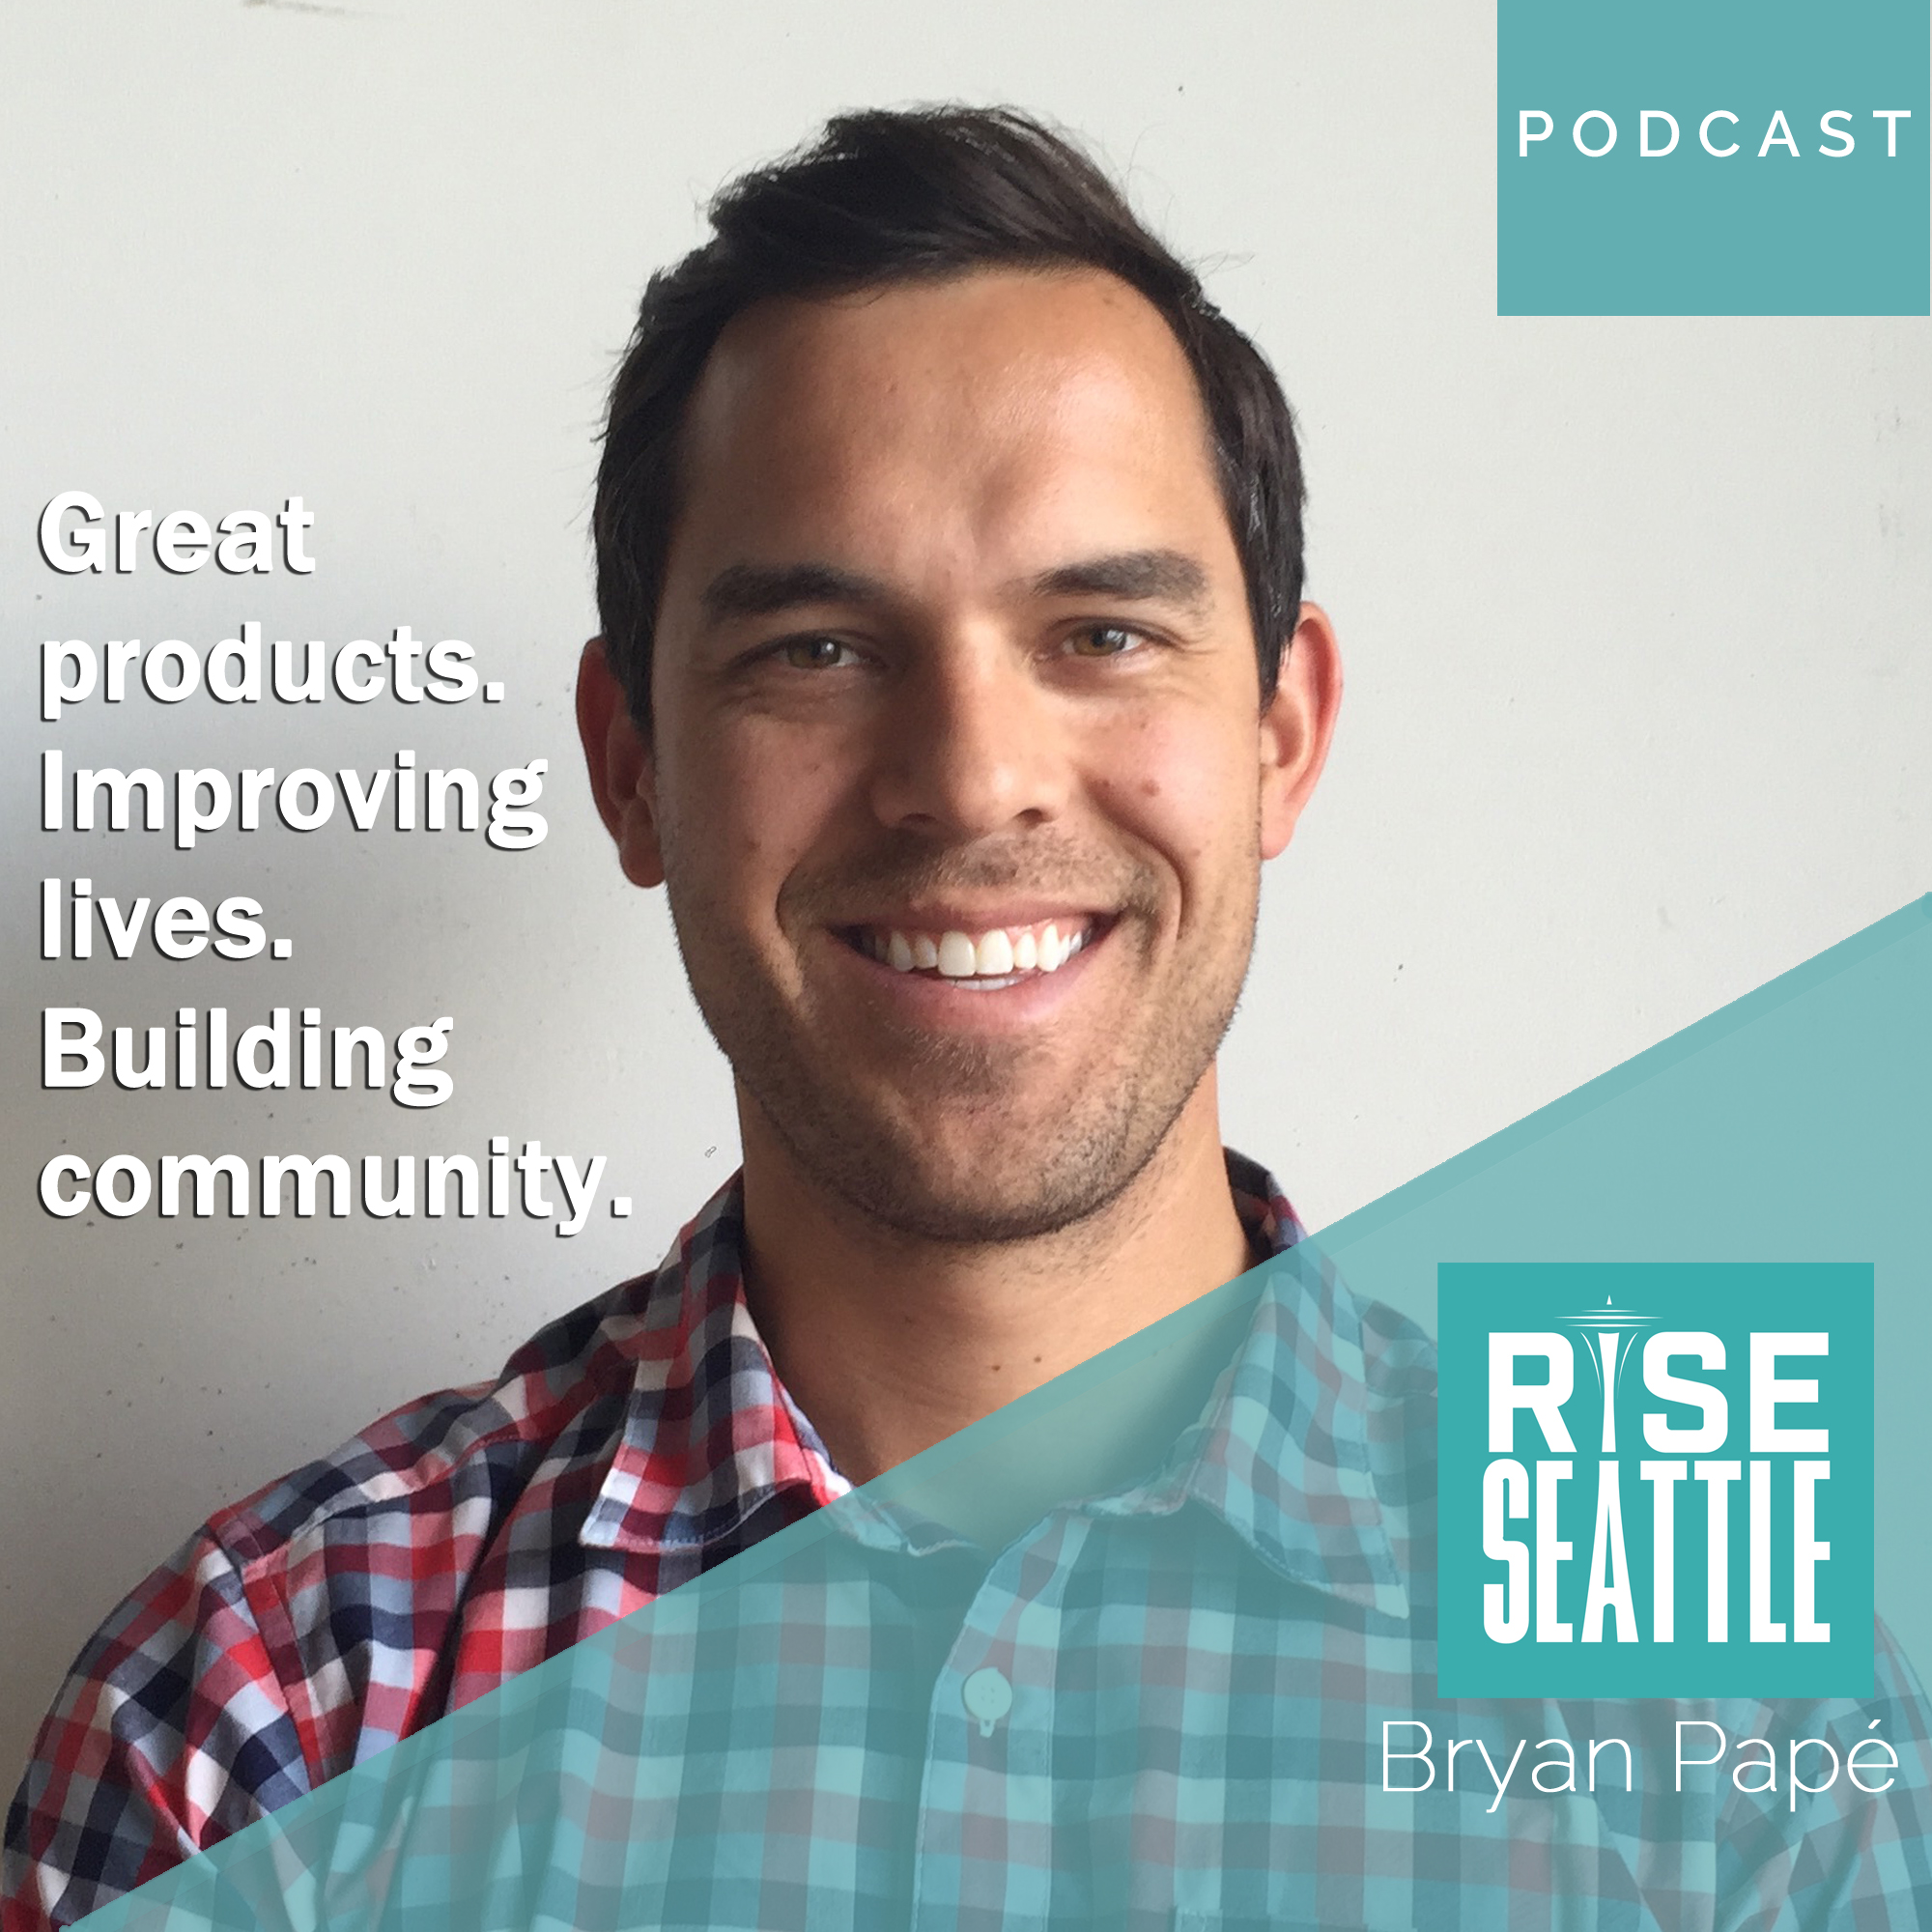 S1.E3. Bryan Papé of MiiR: Great Products. Improving Lives. Building Community